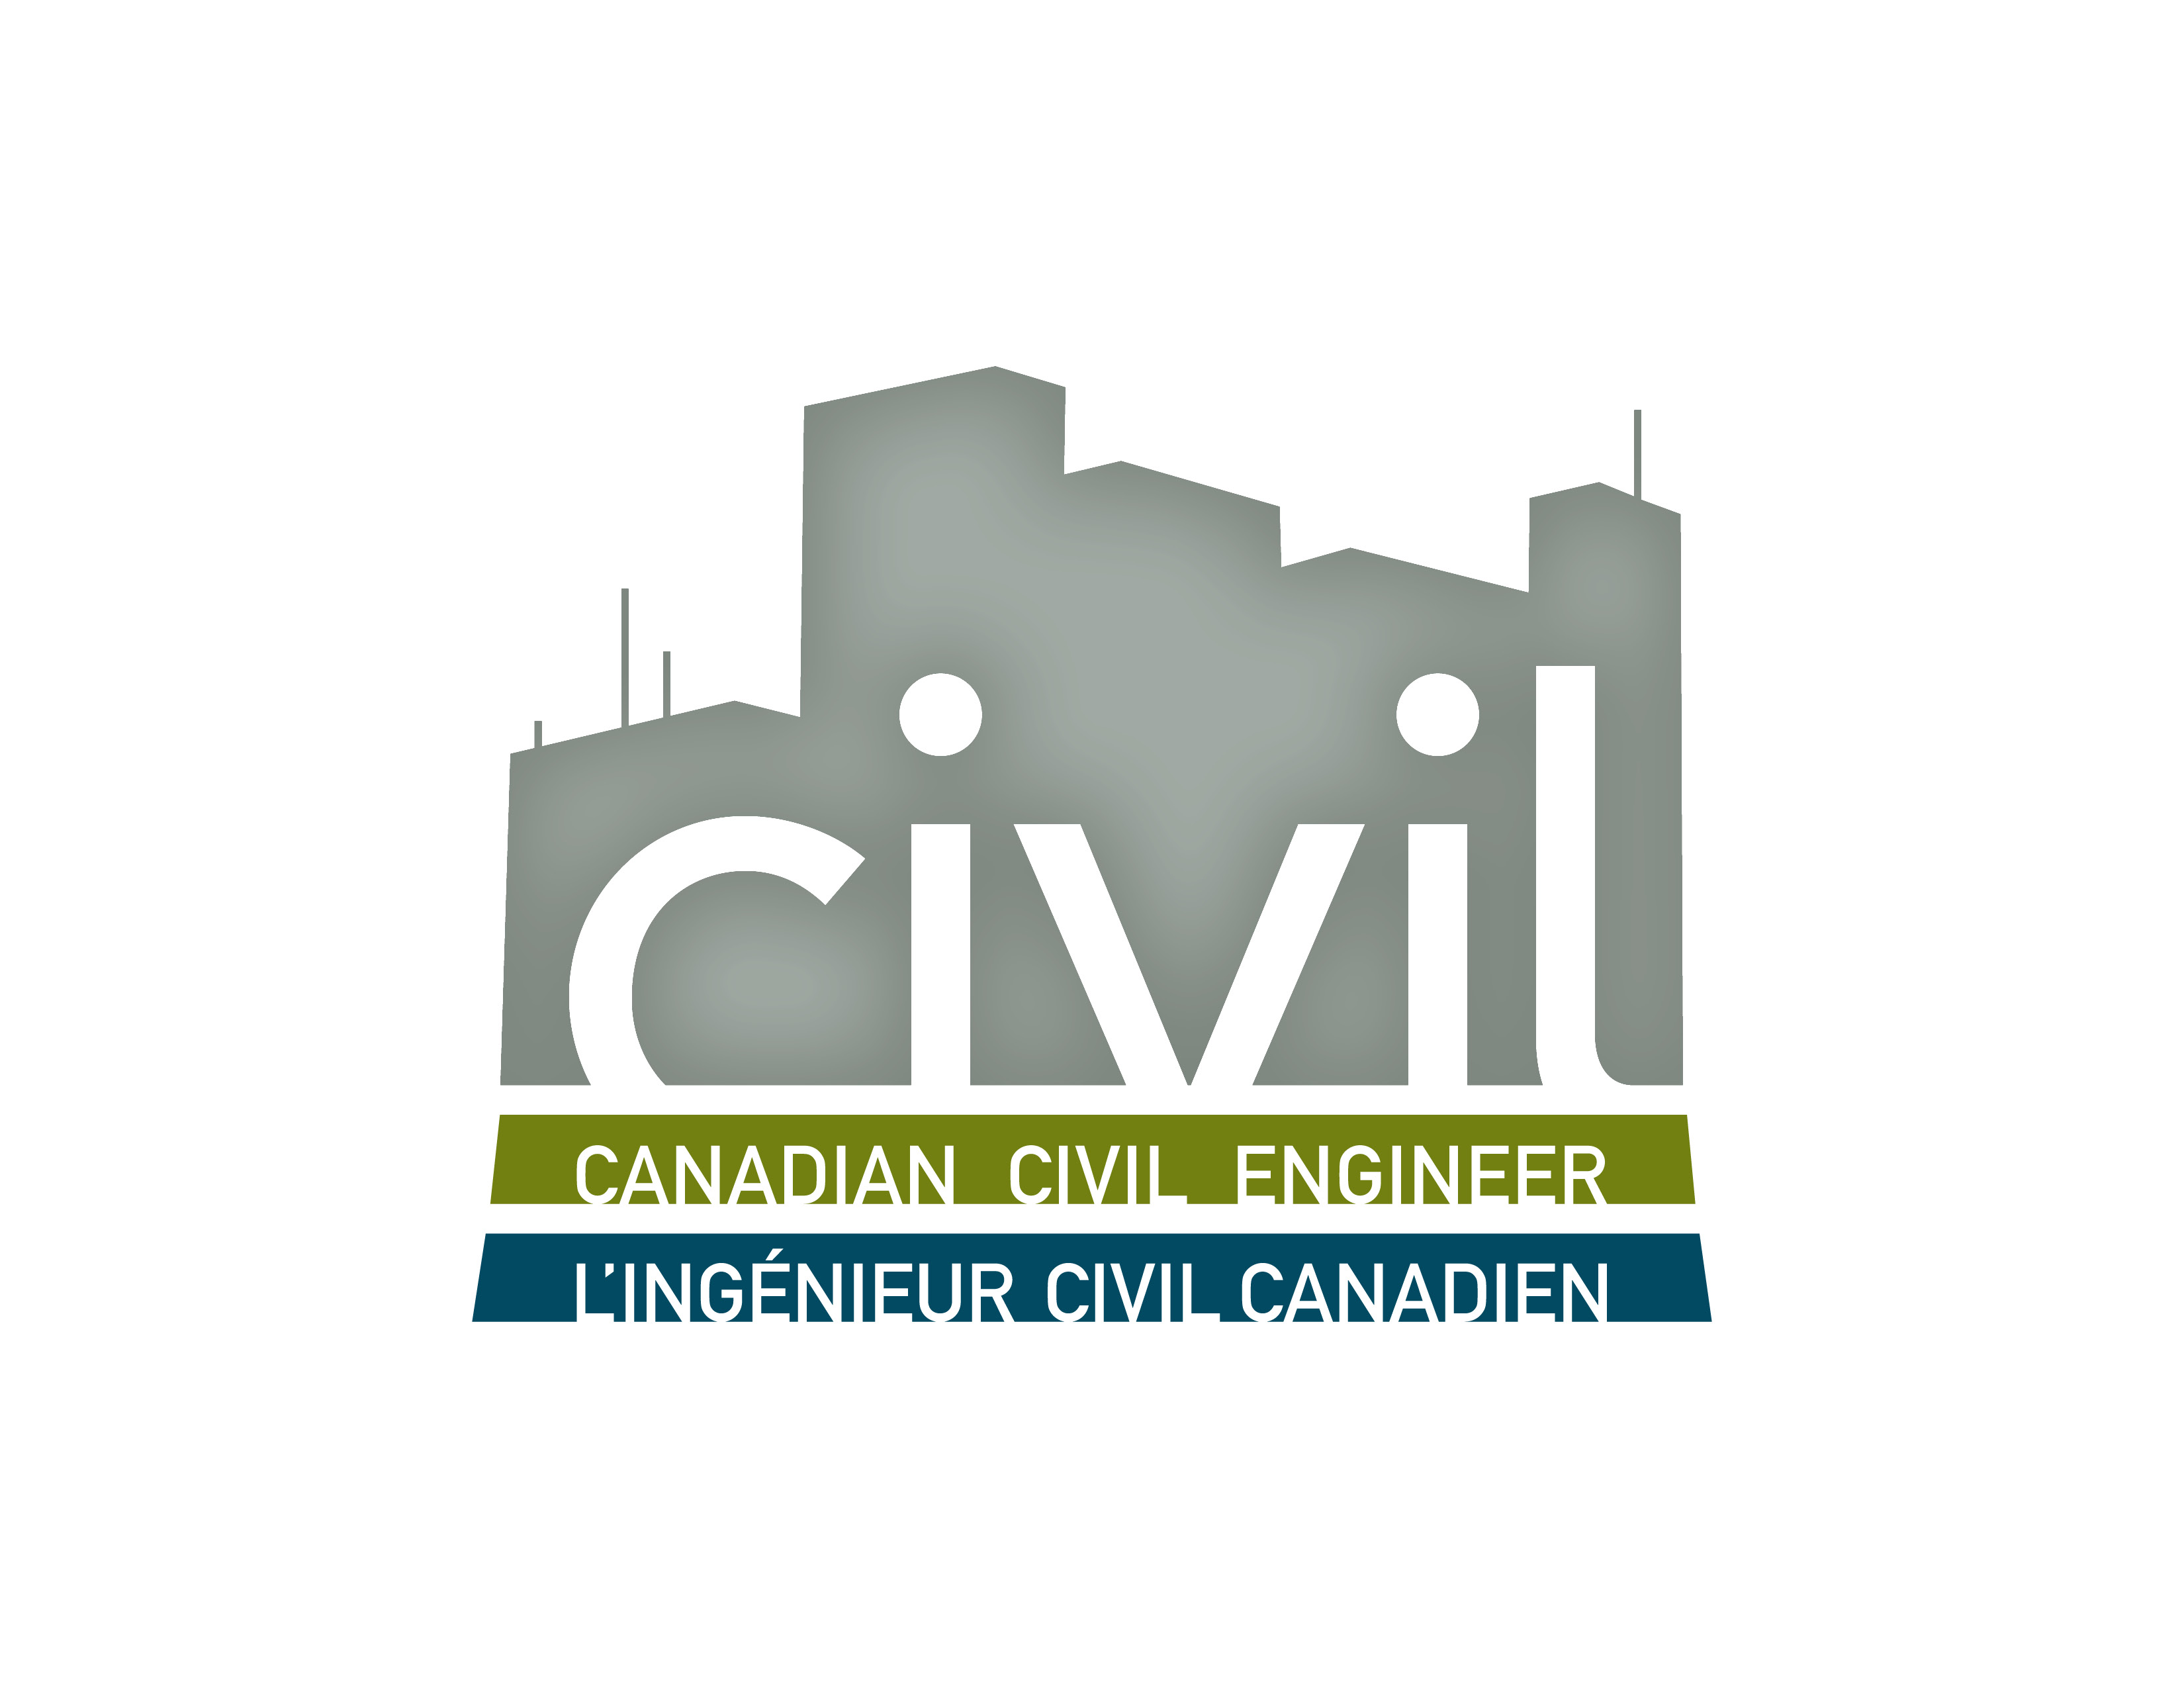 Canadian Civil Engineer magazine